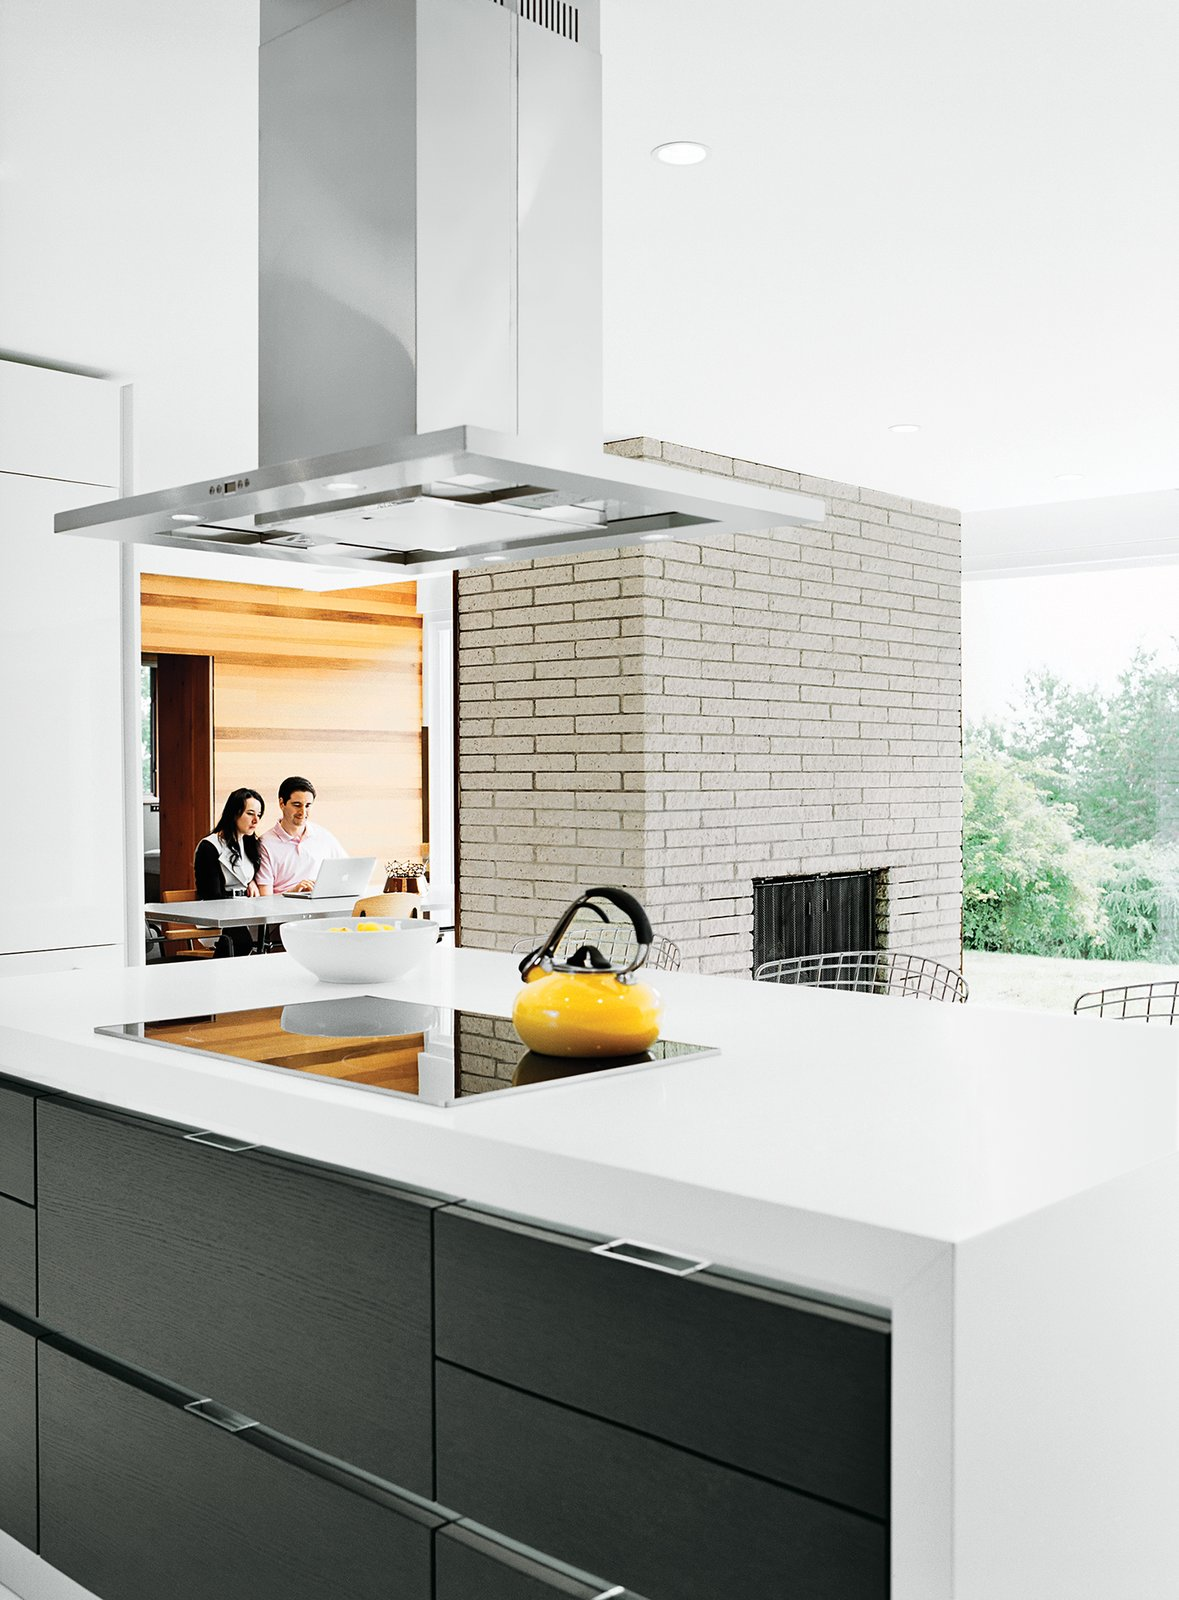 The cooktop and oven are Miele, the counter-top is Caesarstone, and the refrigerator is Liebherr. Tagged: Kitchen, Range Hood, and Cooktops.  Photo 6 of 12 in The Midcentury Spirit is Alive and Well in This Hudson Valley Escape